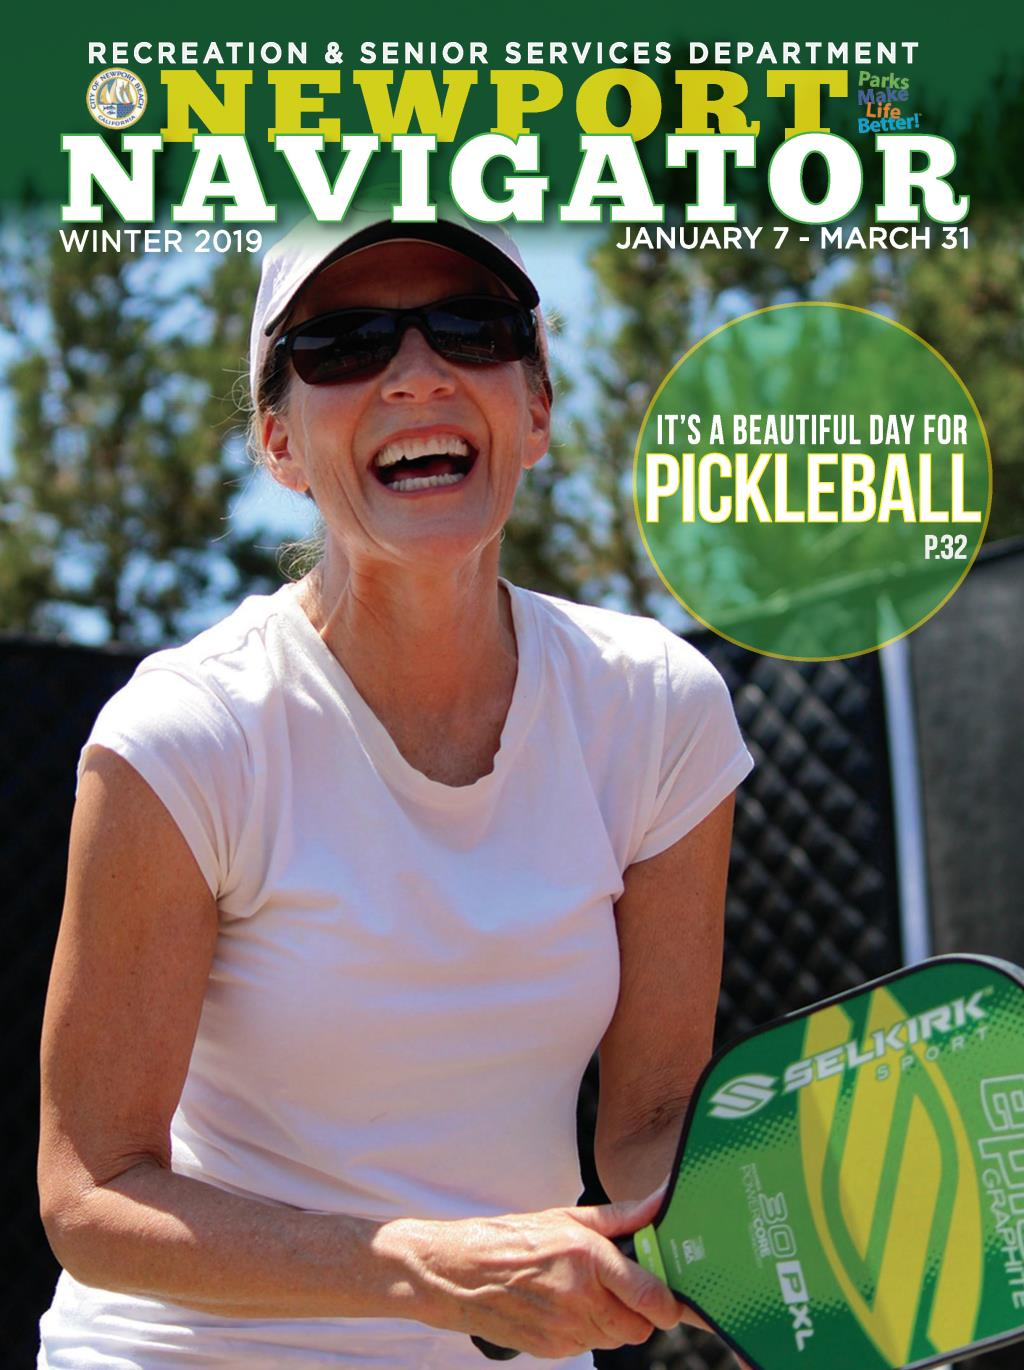 Recreation & Senior Services, Newport Navigator, Winter 2019, January 7 - March 31, It's a beautiful day for pickleball p.32,